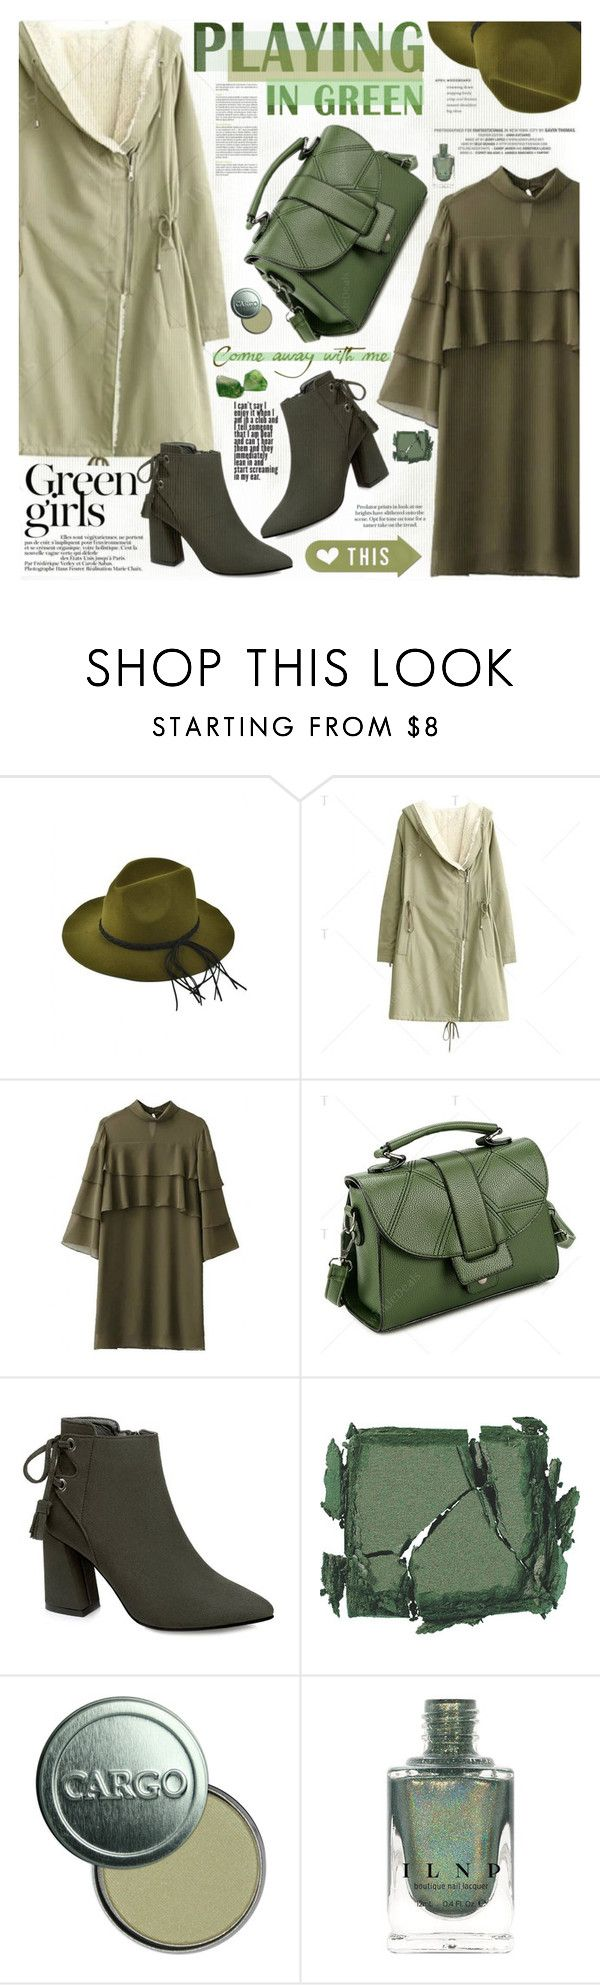 """""""PLAYING IN GREEN"""" by katjuncica ❤ liked on Polyvore featuring Green Girls, Surratt, CARGO, GREEN, greencoat and greenandgreenandgreen"""